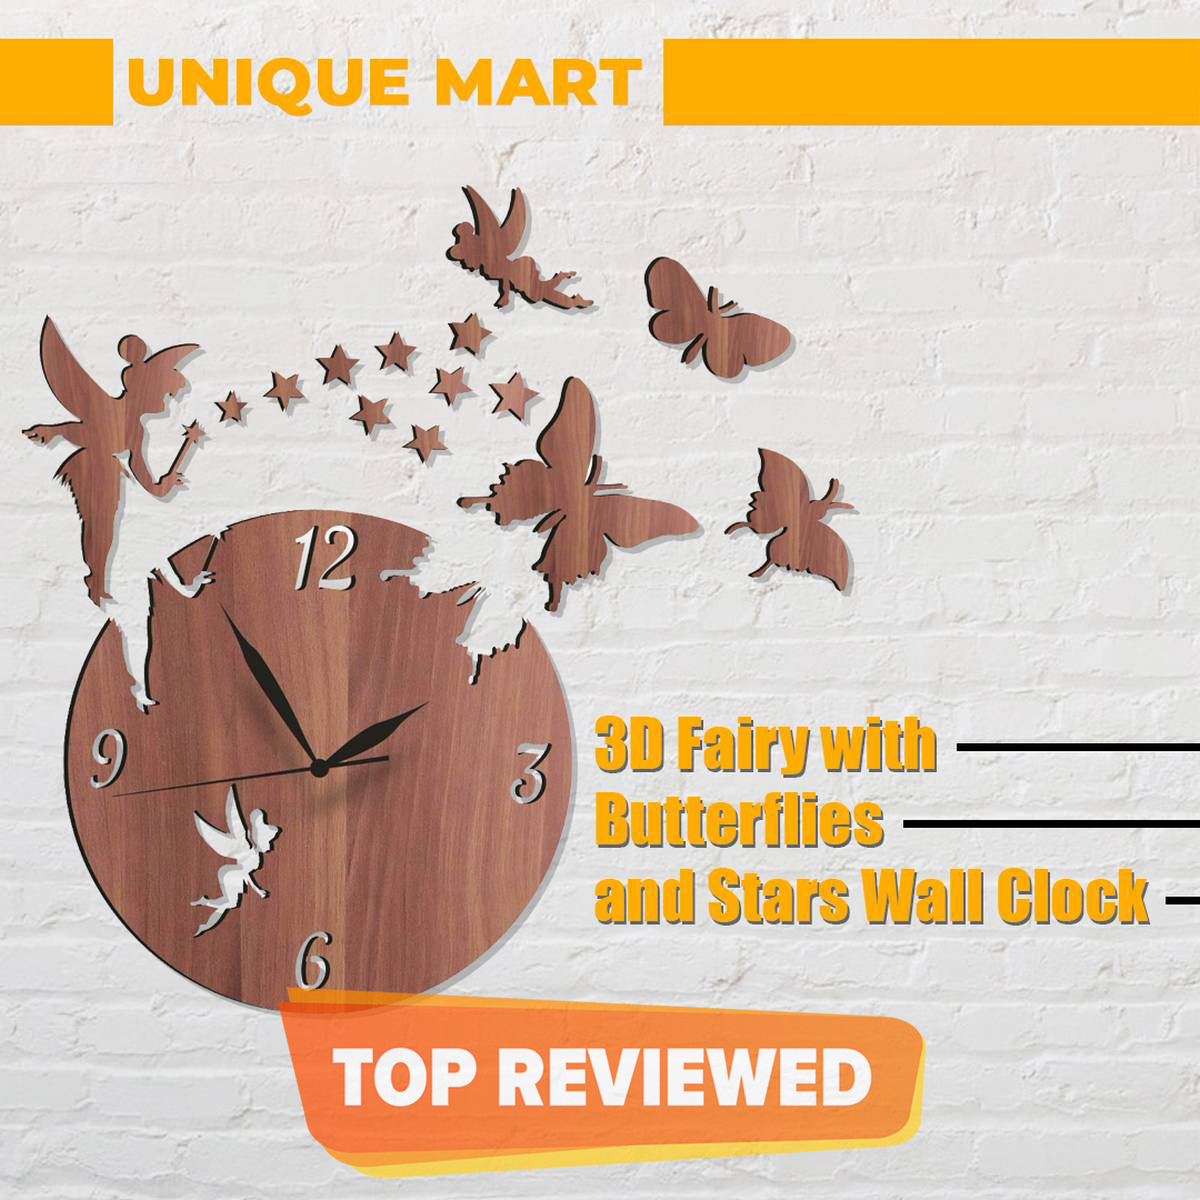 Wooden Wall Clock Home Decor Watches, Laser Cut Wooden Wall Clock in stylish design with Fairy, Stars and Butterflies.